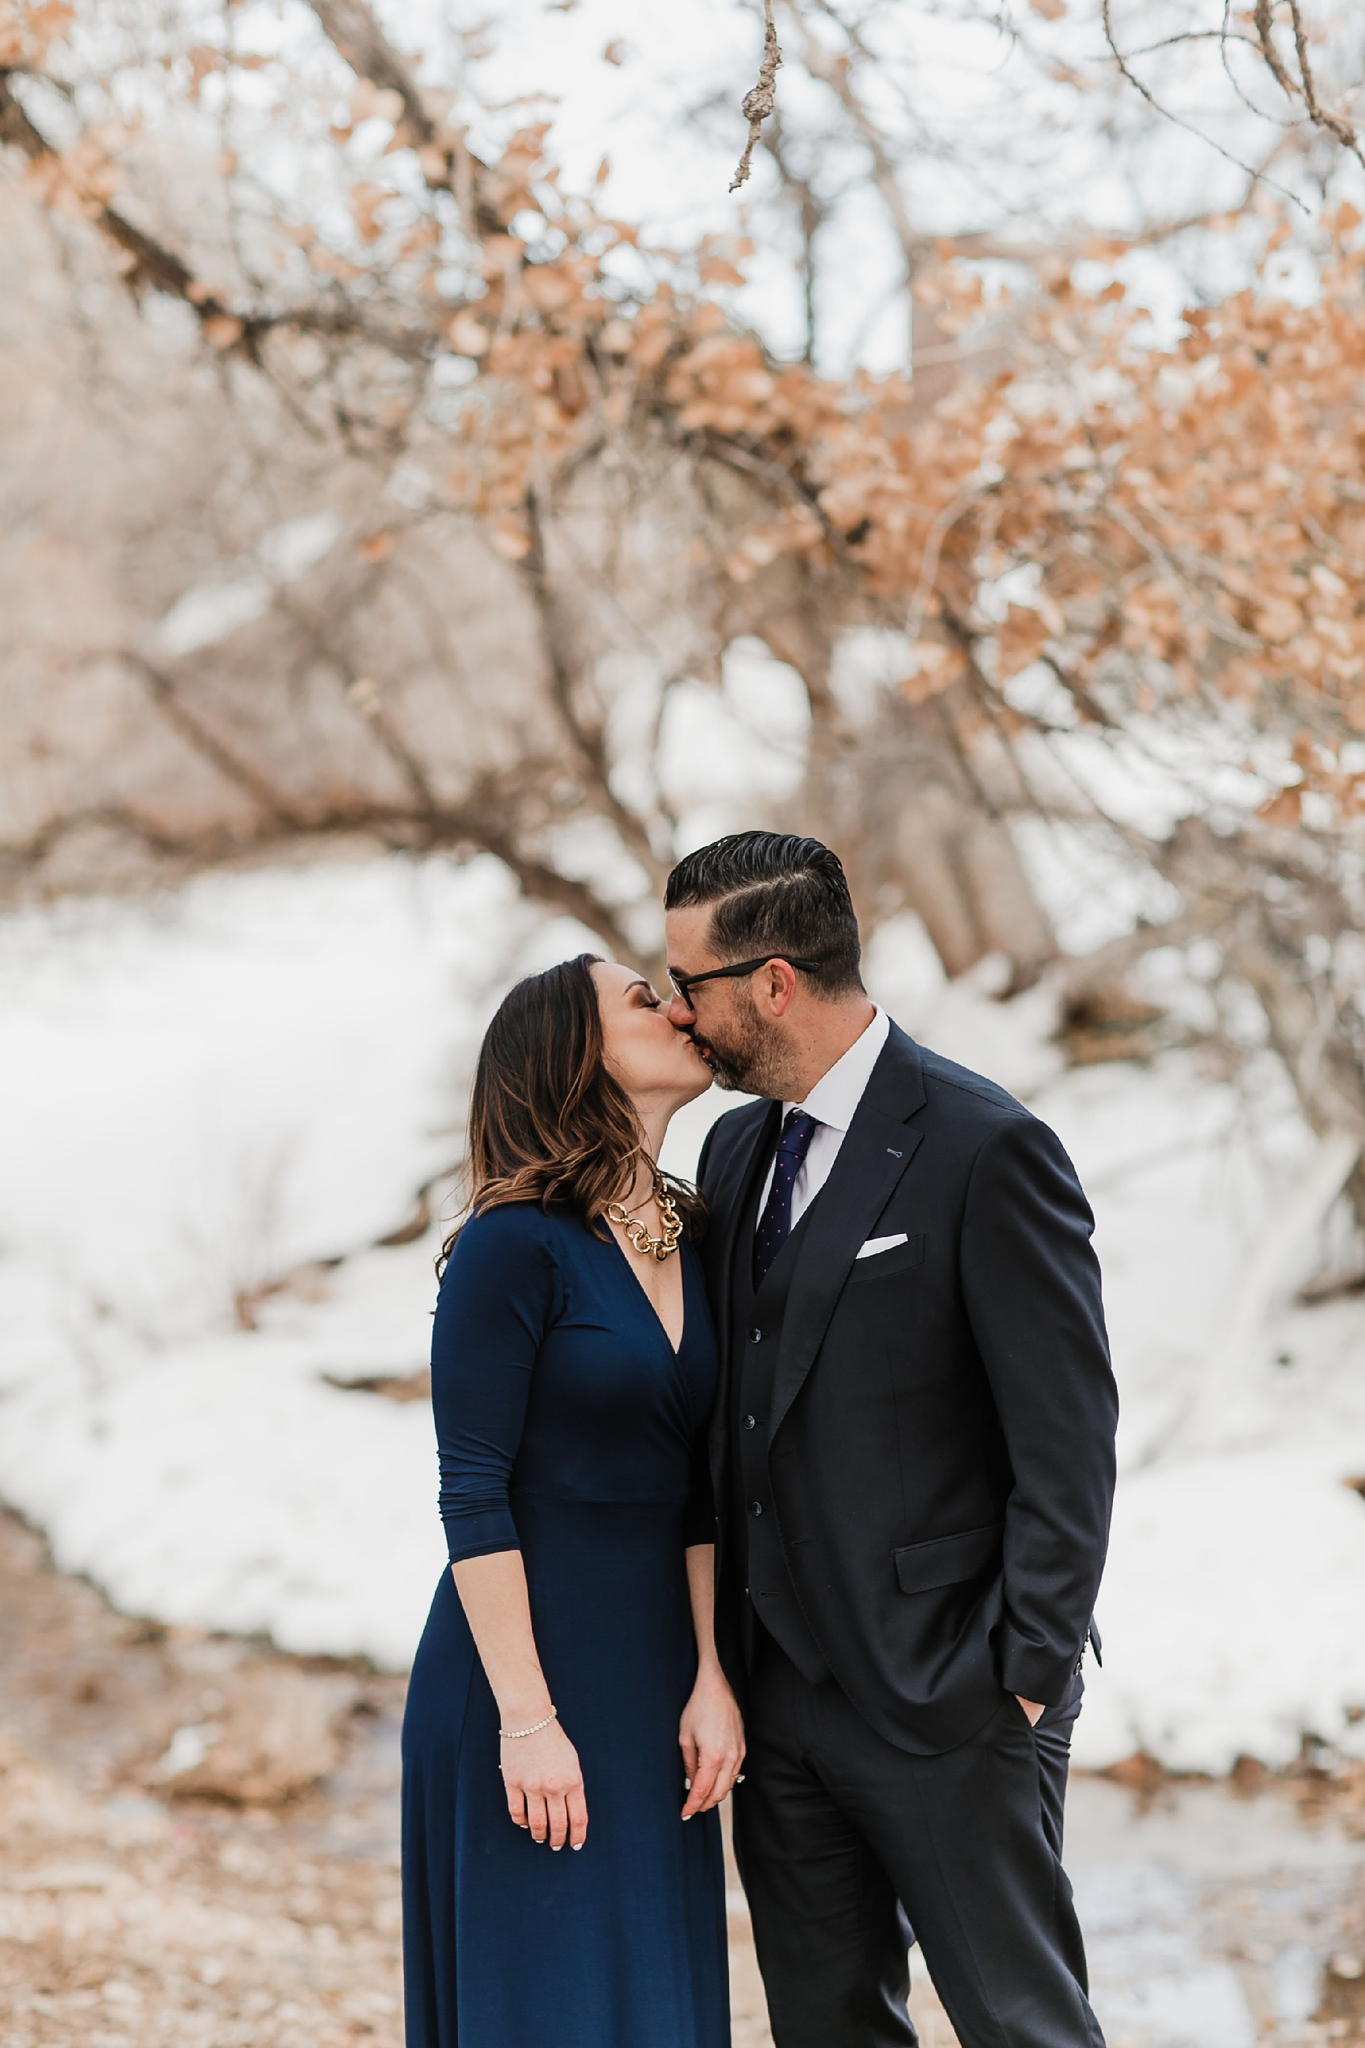 Alicia+lucia+photography+-+albuquerque+wedding+photographer+-+santa+fe+wedding+photography+-+new+mexico+wedding+photographer+-+new+mexico+wedding+-+engagement+-+winter+engagement+-+albuquerque+engagement_0015.jpg